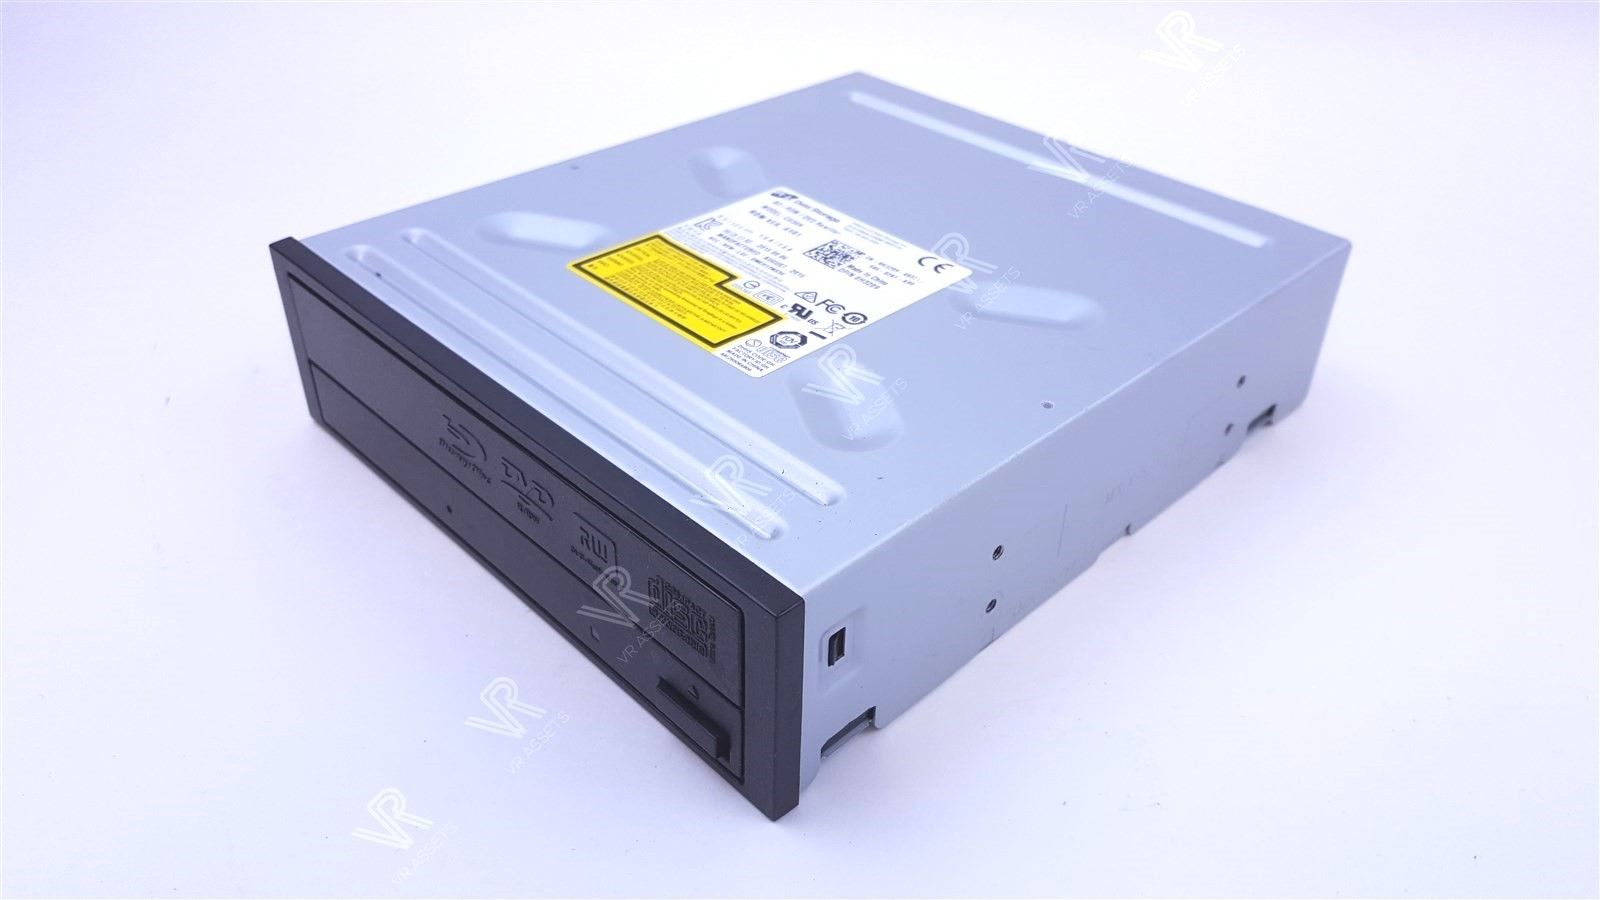 HL CH30N 6x Blu-ray Reader BD-ROM 16x DVDRW SATA Internal Drive Black New